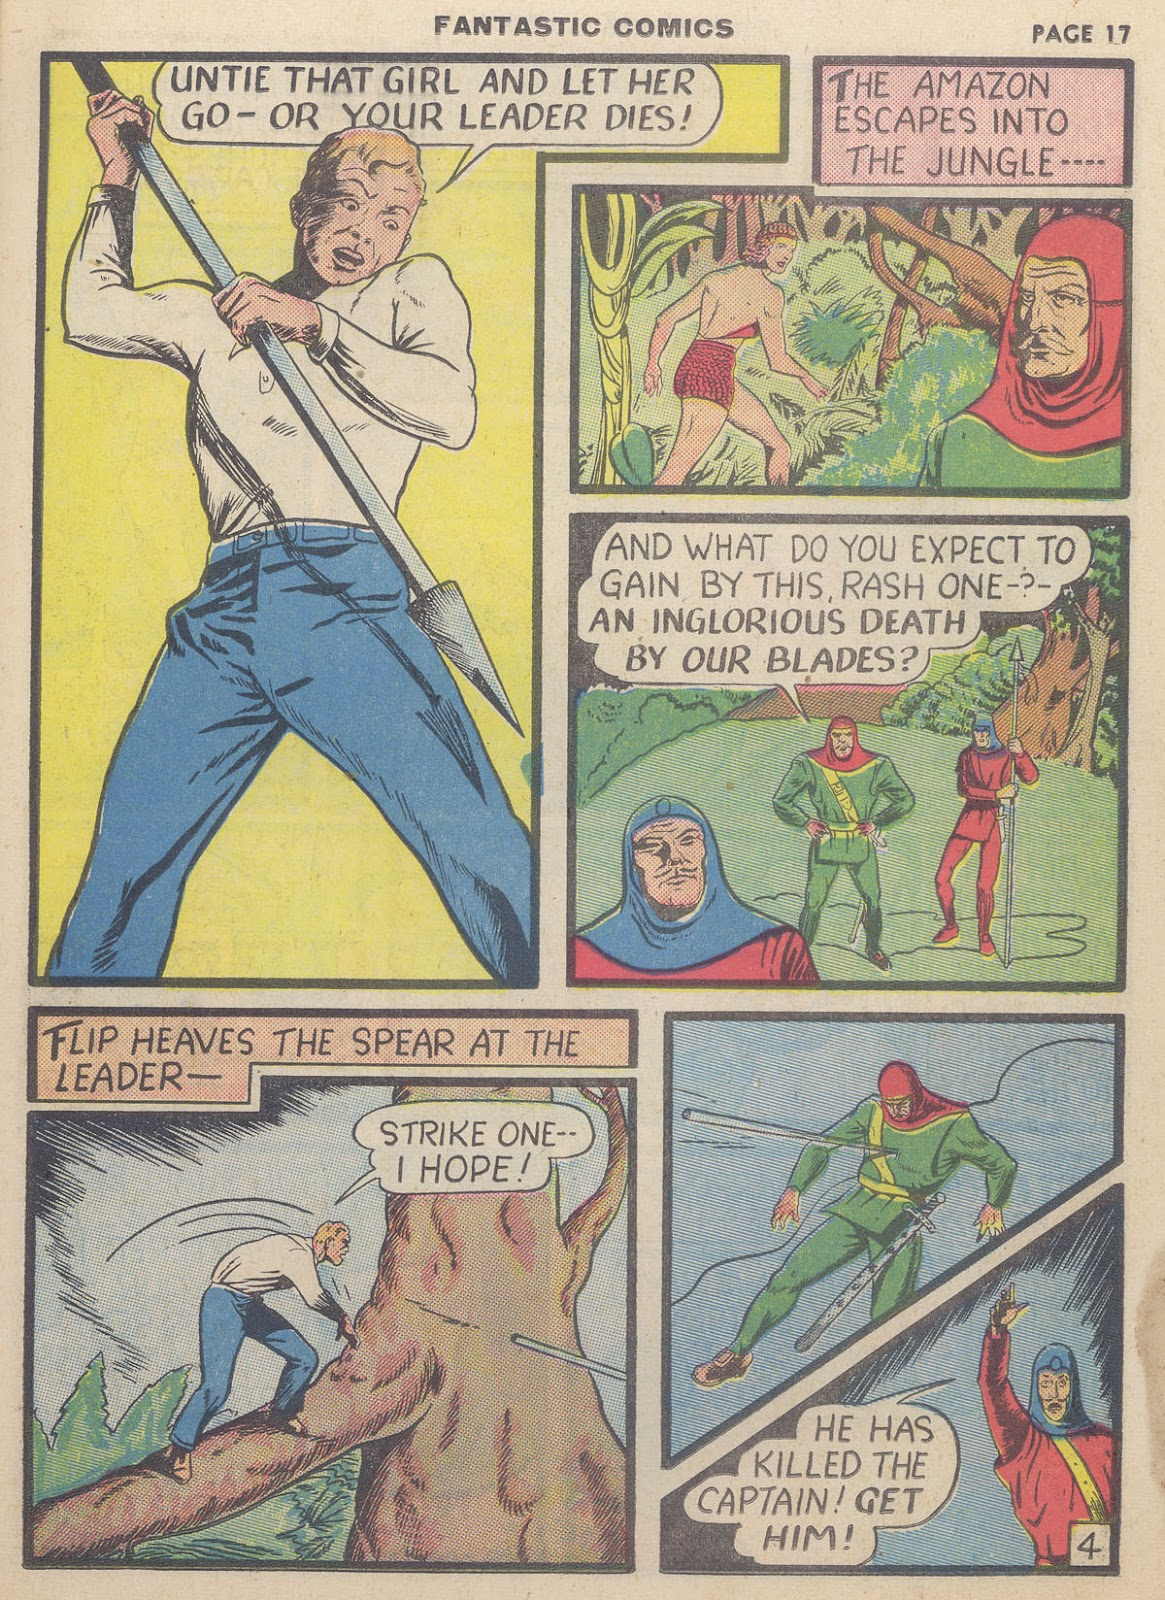 Read online Fantastic Comics comic -  Issue #9 - 19